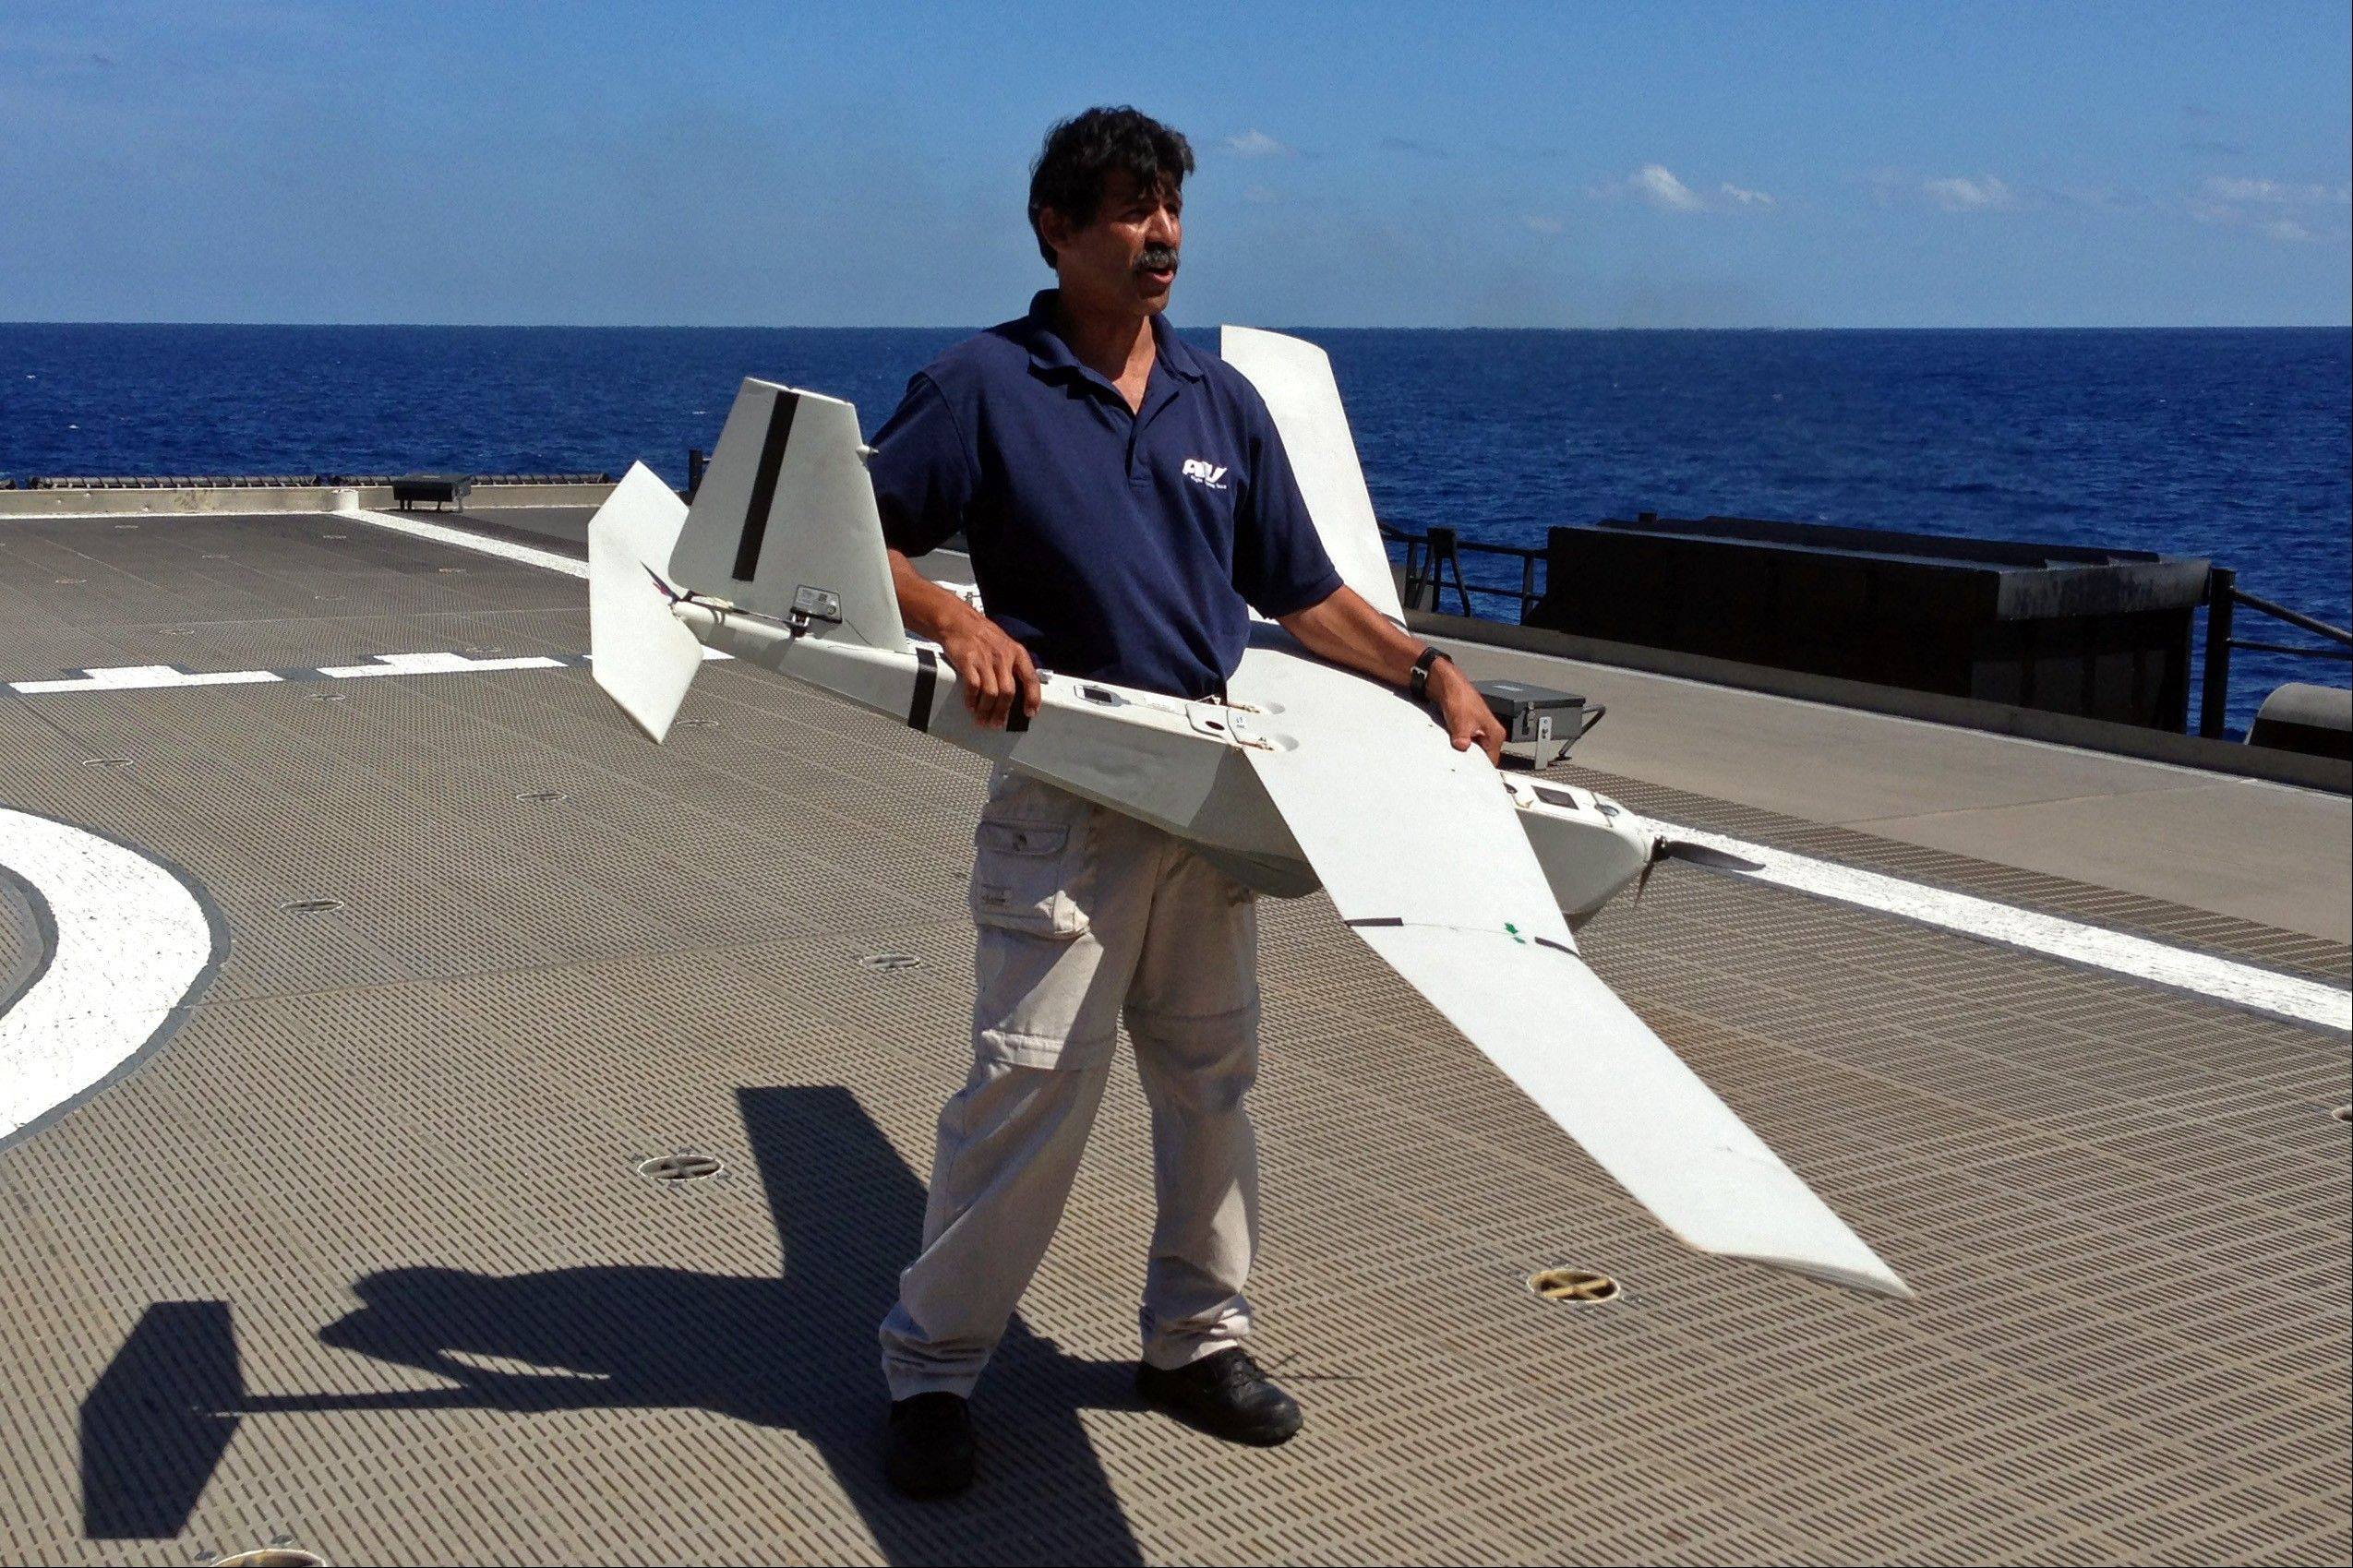 Stuart Orozco, flight operator with Aeronvironment Inc., prepares Friday to launch a UAS (unmanned aircraft system) named Puma from the deck of the U.S. Navy high speed vessel Swift, near Key West, Florida.